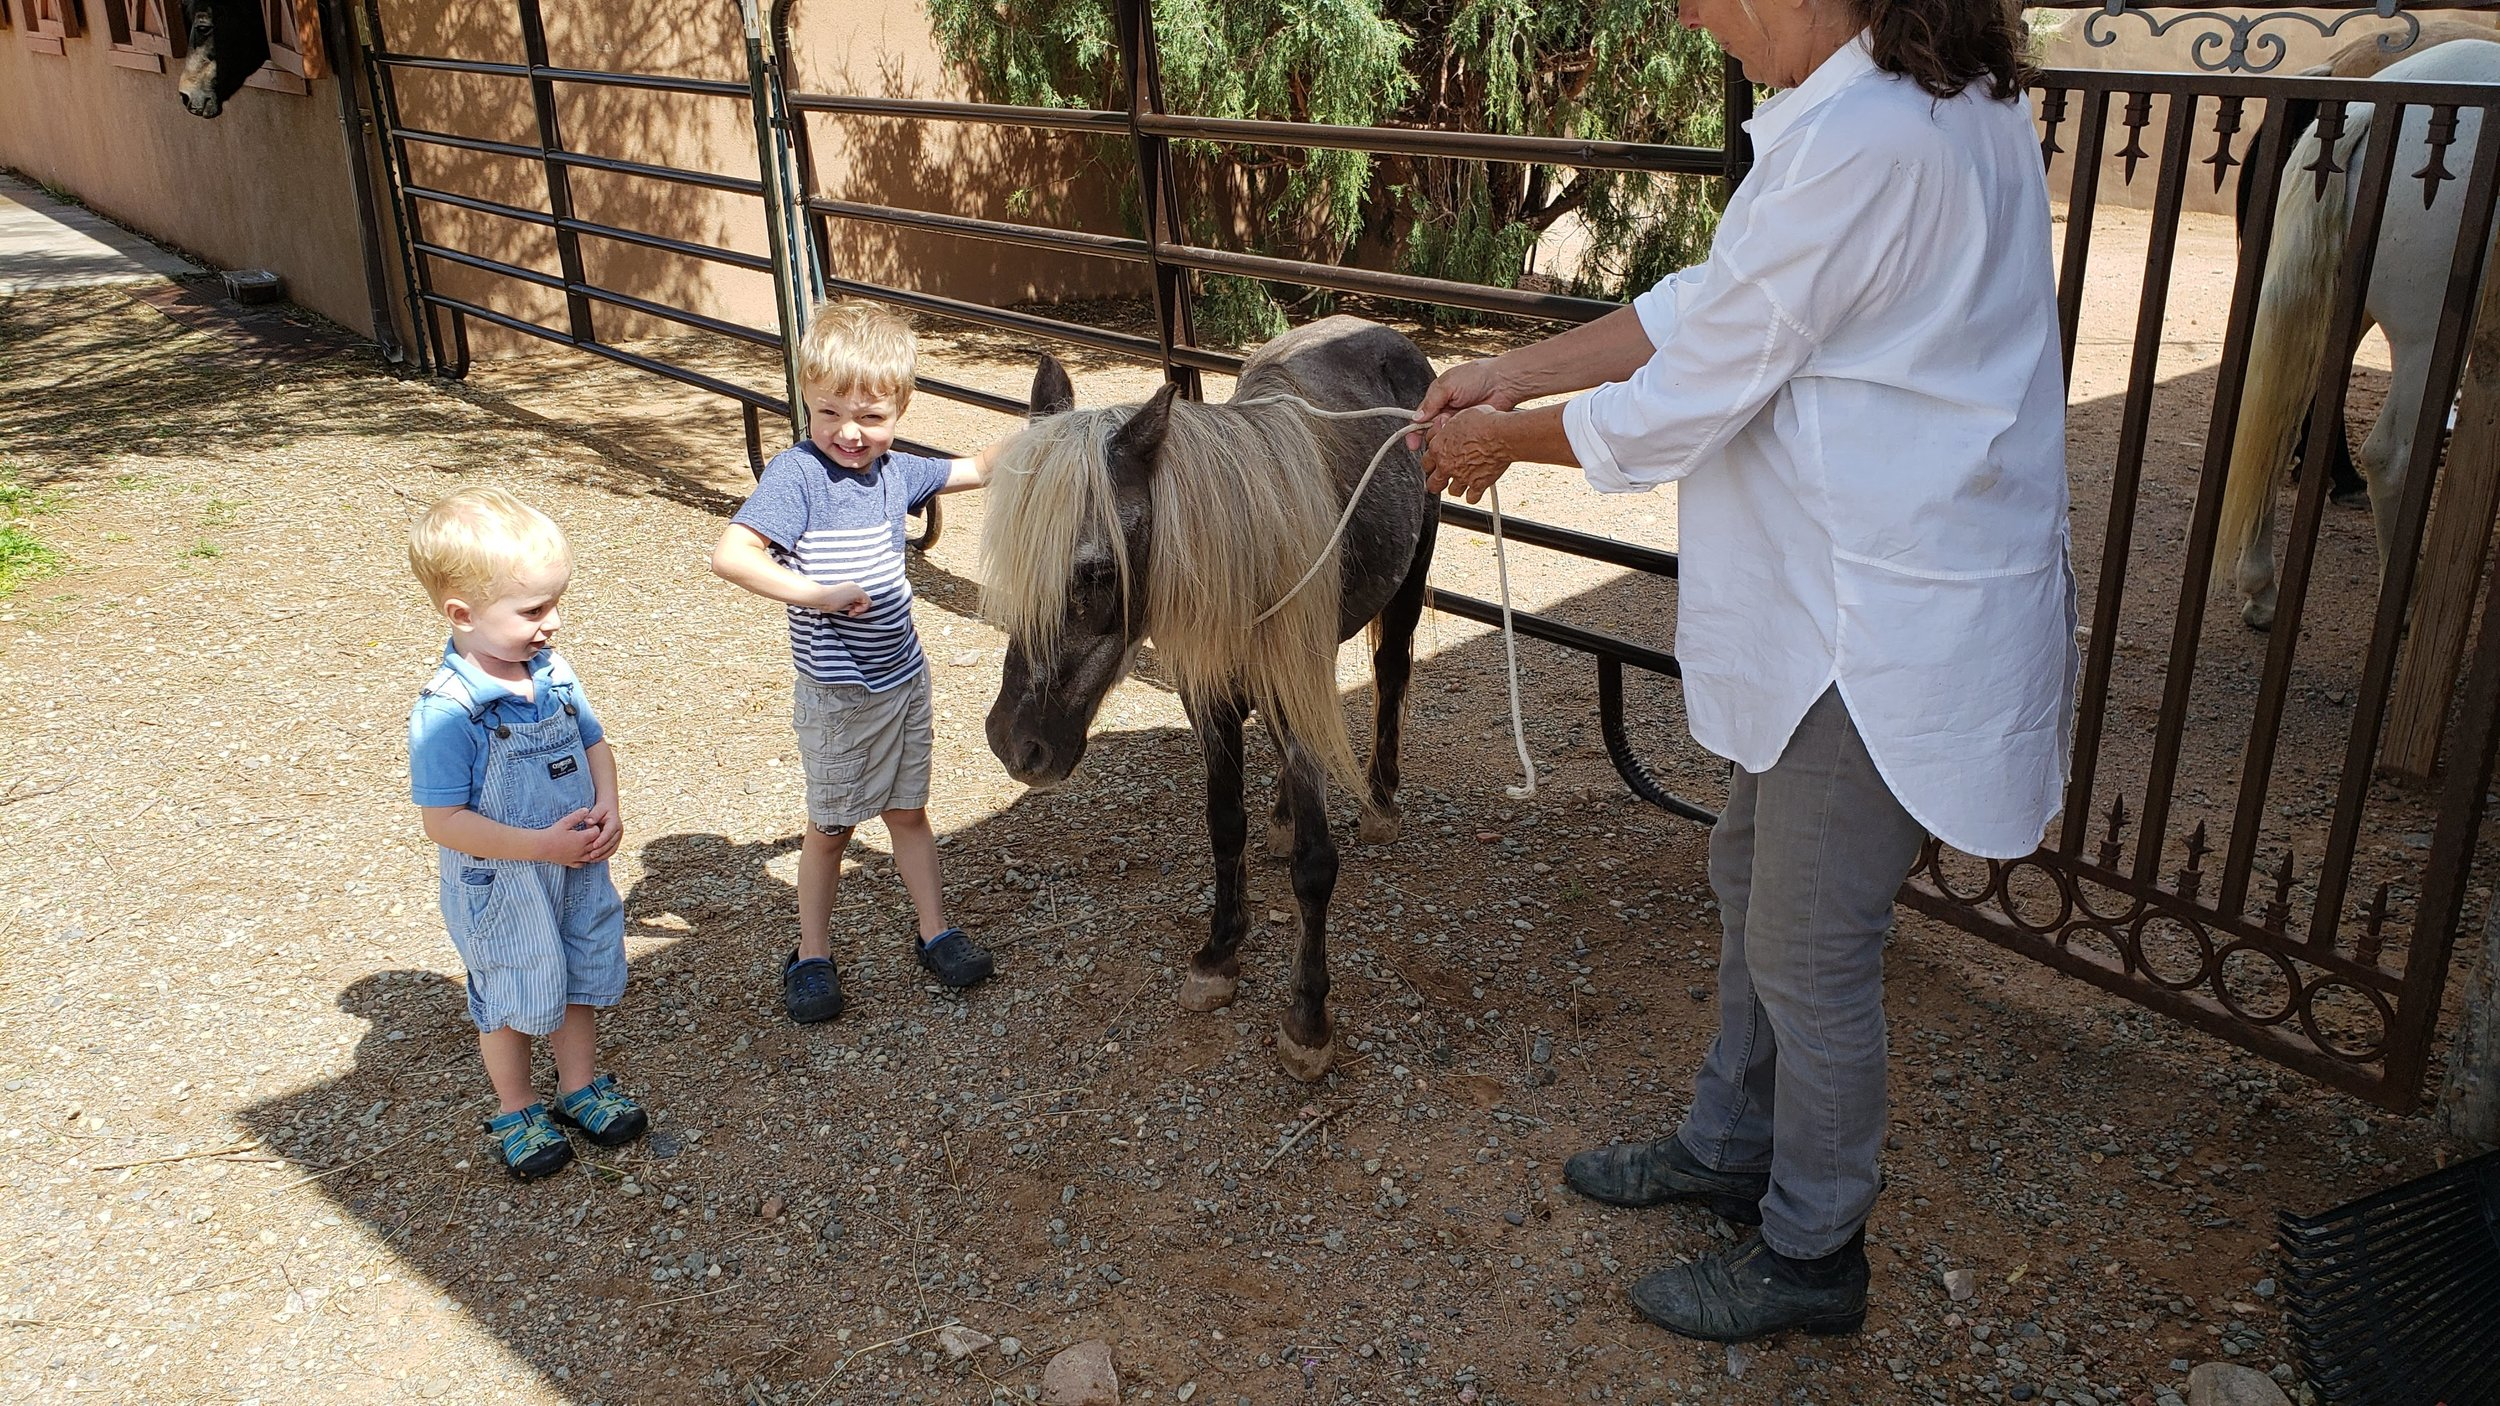 Our host was so sweet and gracious, and brought out the miniature horse for the boys to pet!